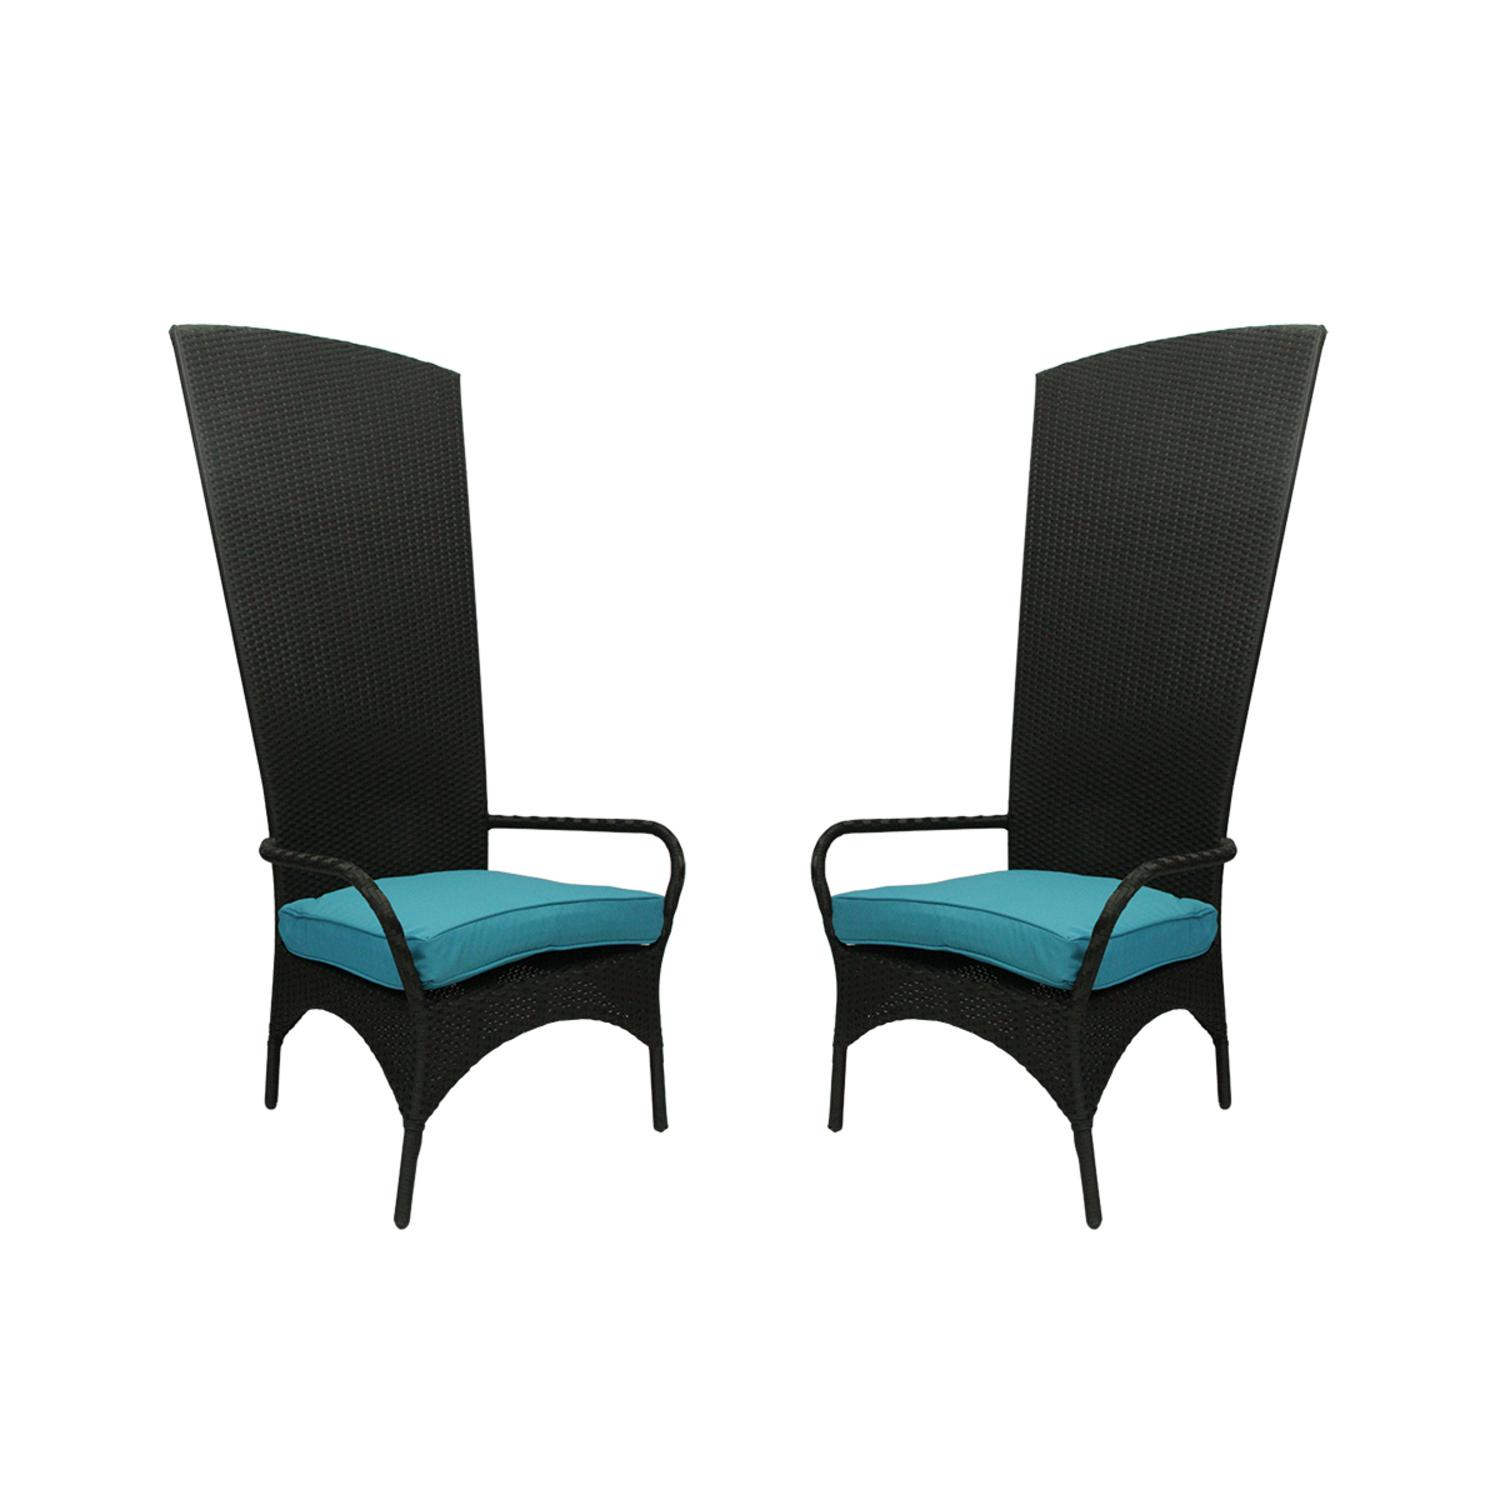 Set of 2 Black Resin Wicker Outdoor Patio King Chairs Blue Cushions by CC Outdoor Living